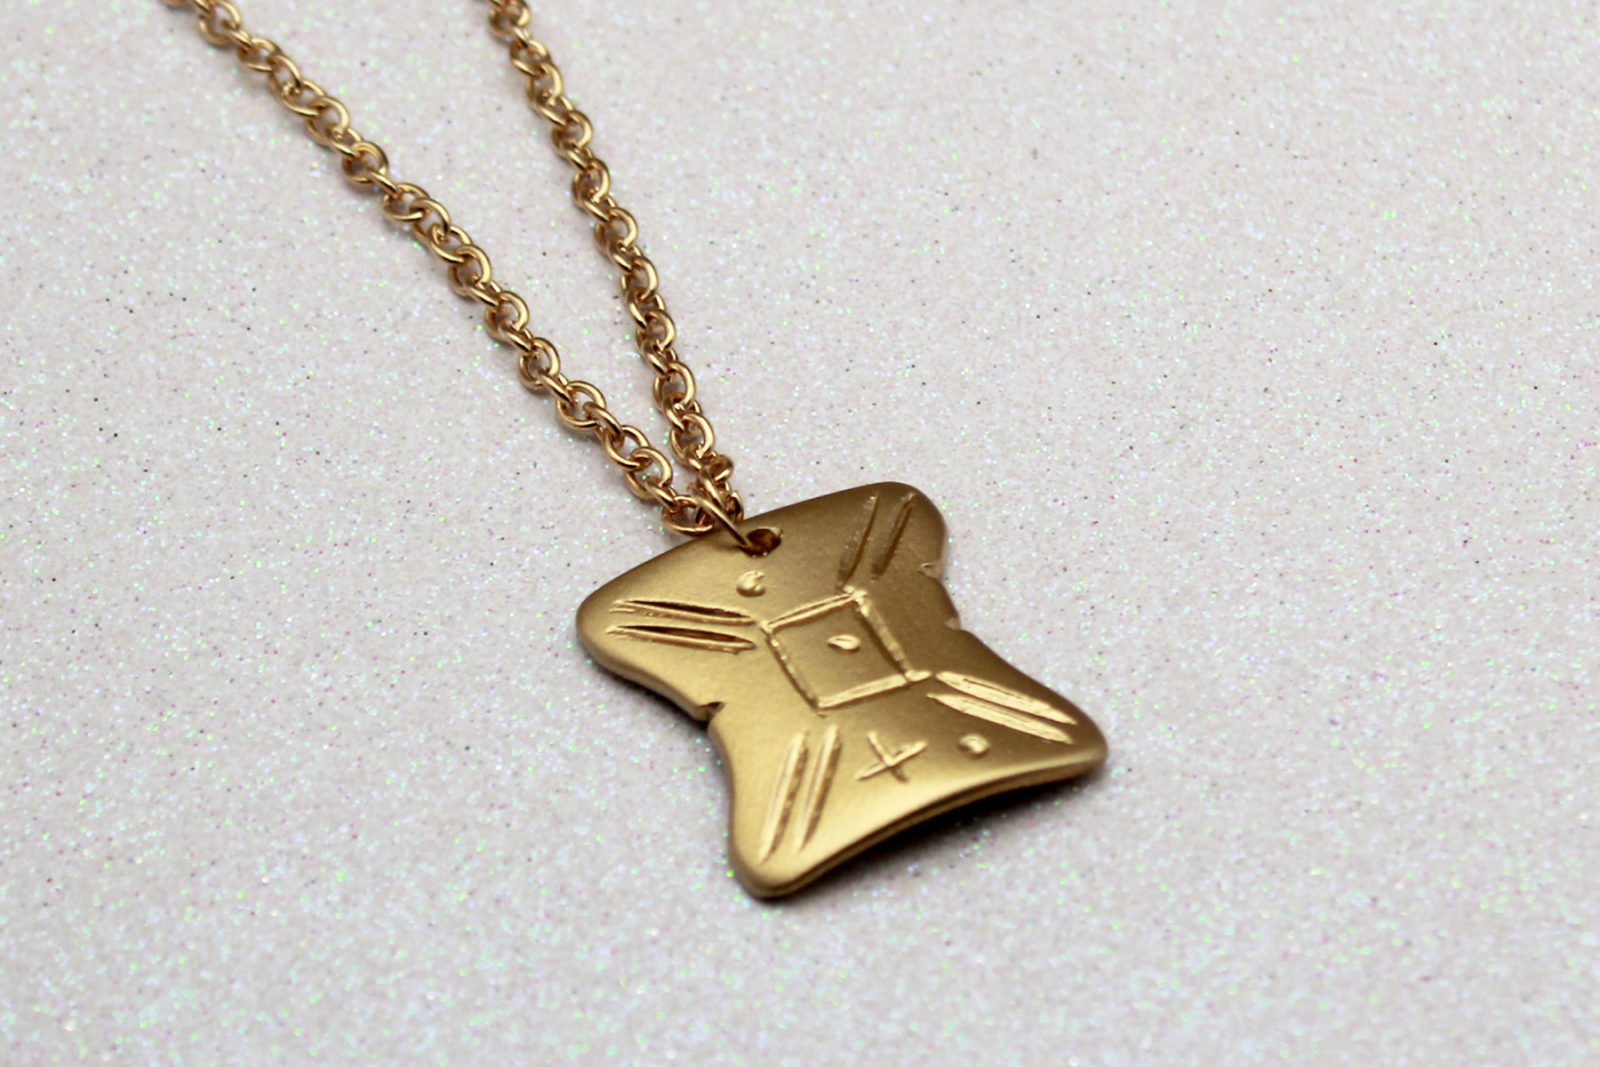 DIY – Star Wars Japor snippet necklace